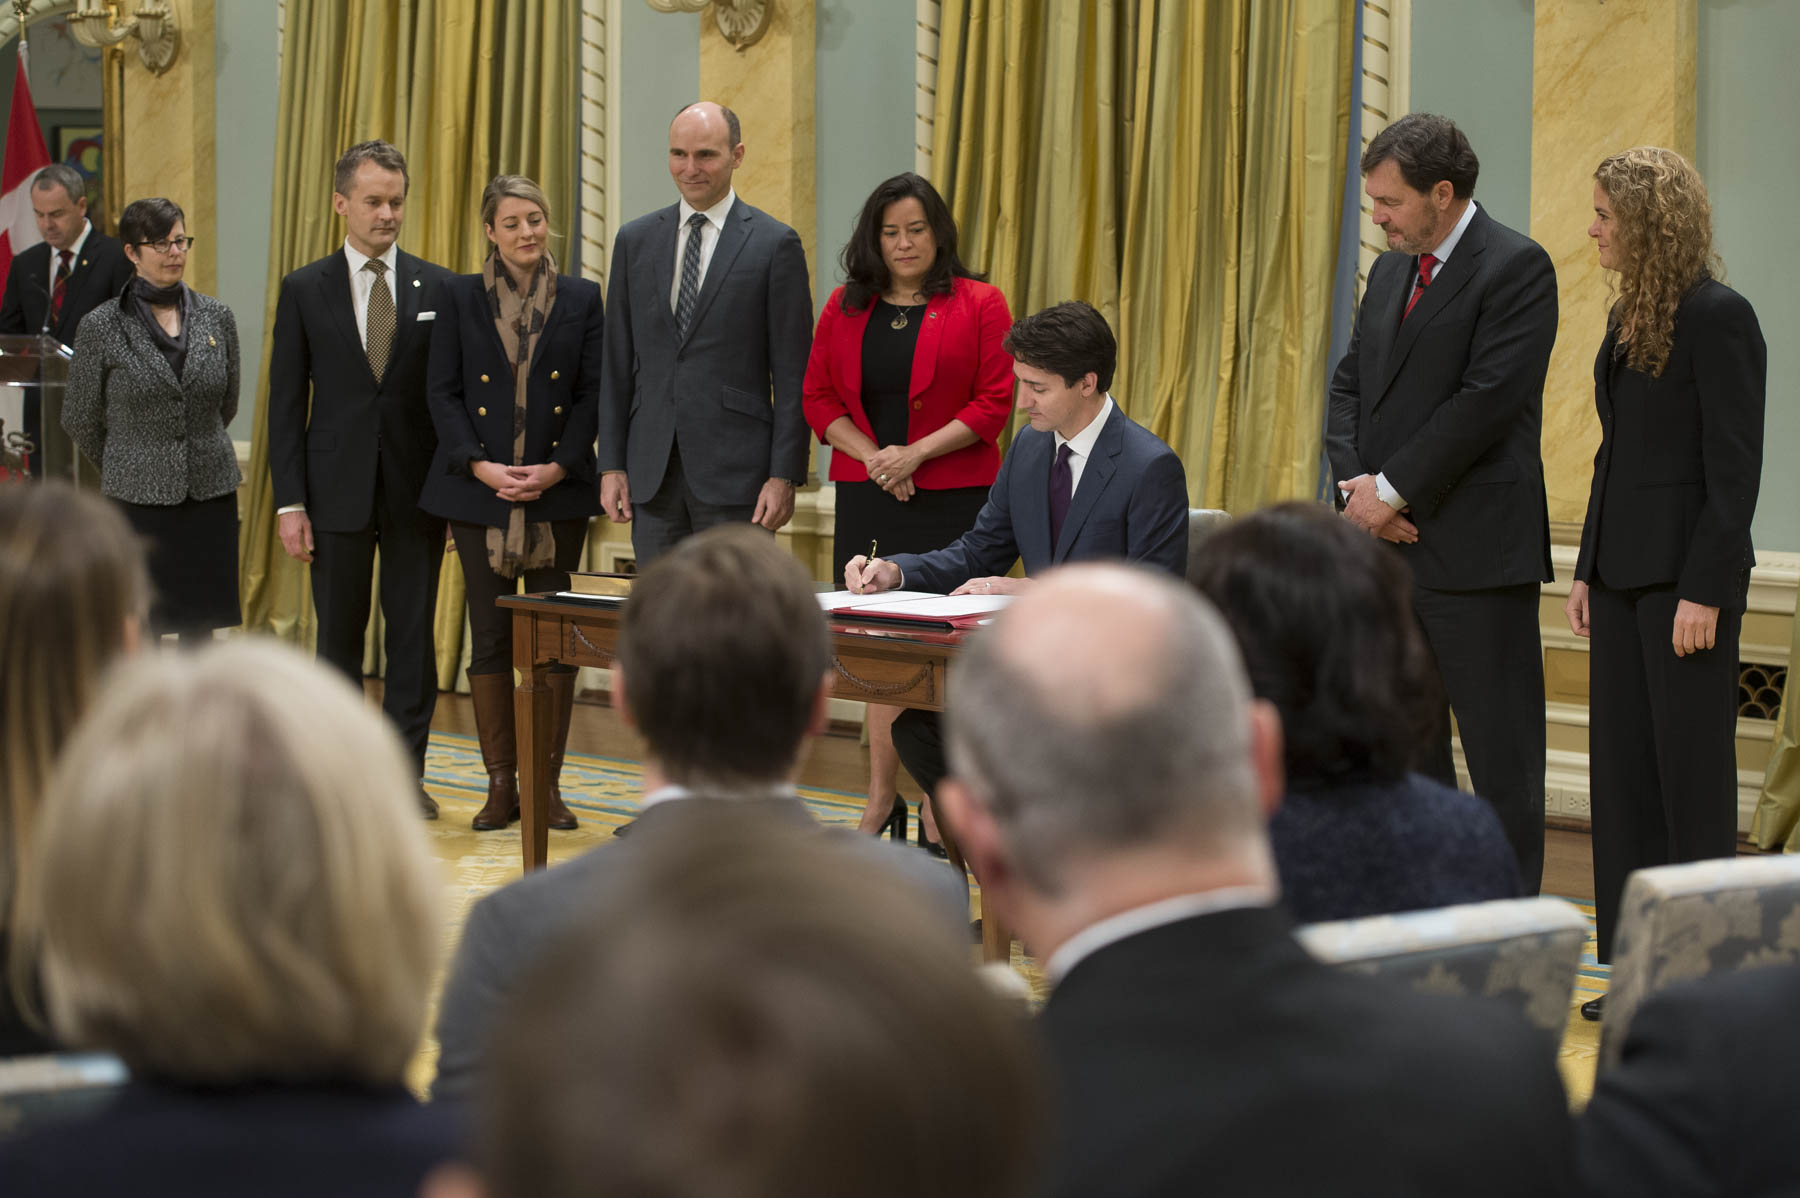 The Prime Minister also signed the oath books and was then followed by the Honourable Jody Wilson-Raybould, Minister of Justice and Attorney General of Canada; the Honourable Jean-Yves Duclos, Minister of Families, Children and Social Development; the Honourable Mélanie Joly, Minister of Canadian Heritage; and the Honourable Seamus O'Regan, Minister of Veterans Affairs and Associate Minister of National Defence.